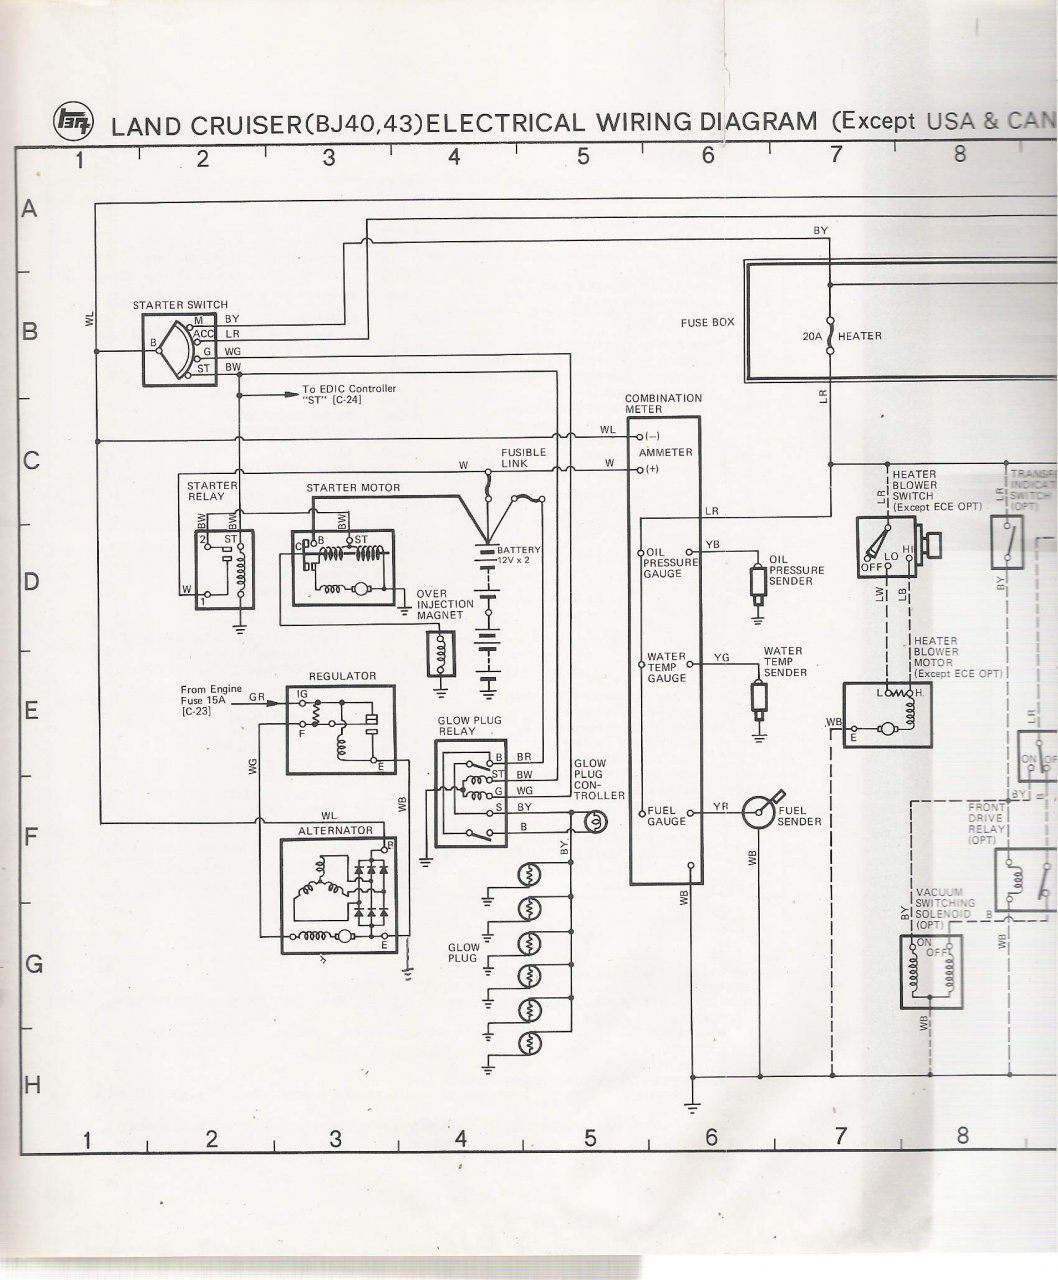 Coolermans Electrical Schematic And Fsm File Retrieval 51 Wiring Diagram 194109 Bytes Last Modified On 8 2016 85100 Am